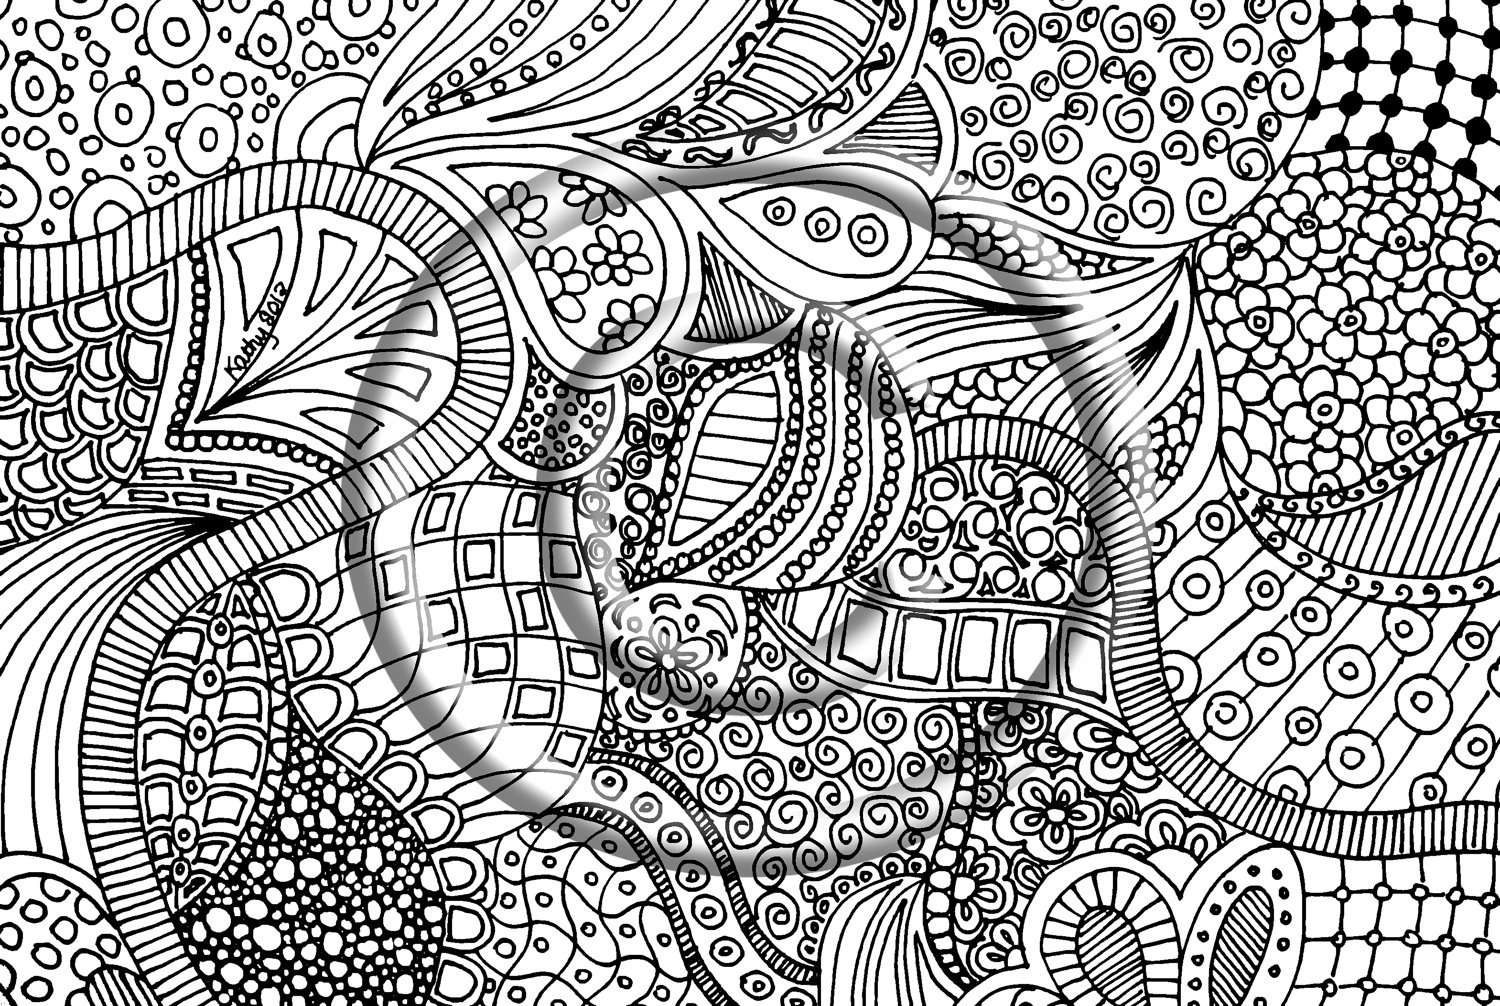 free zentangle coloring pages zentangle colouring pages in the playroom coloring pages free zentangle